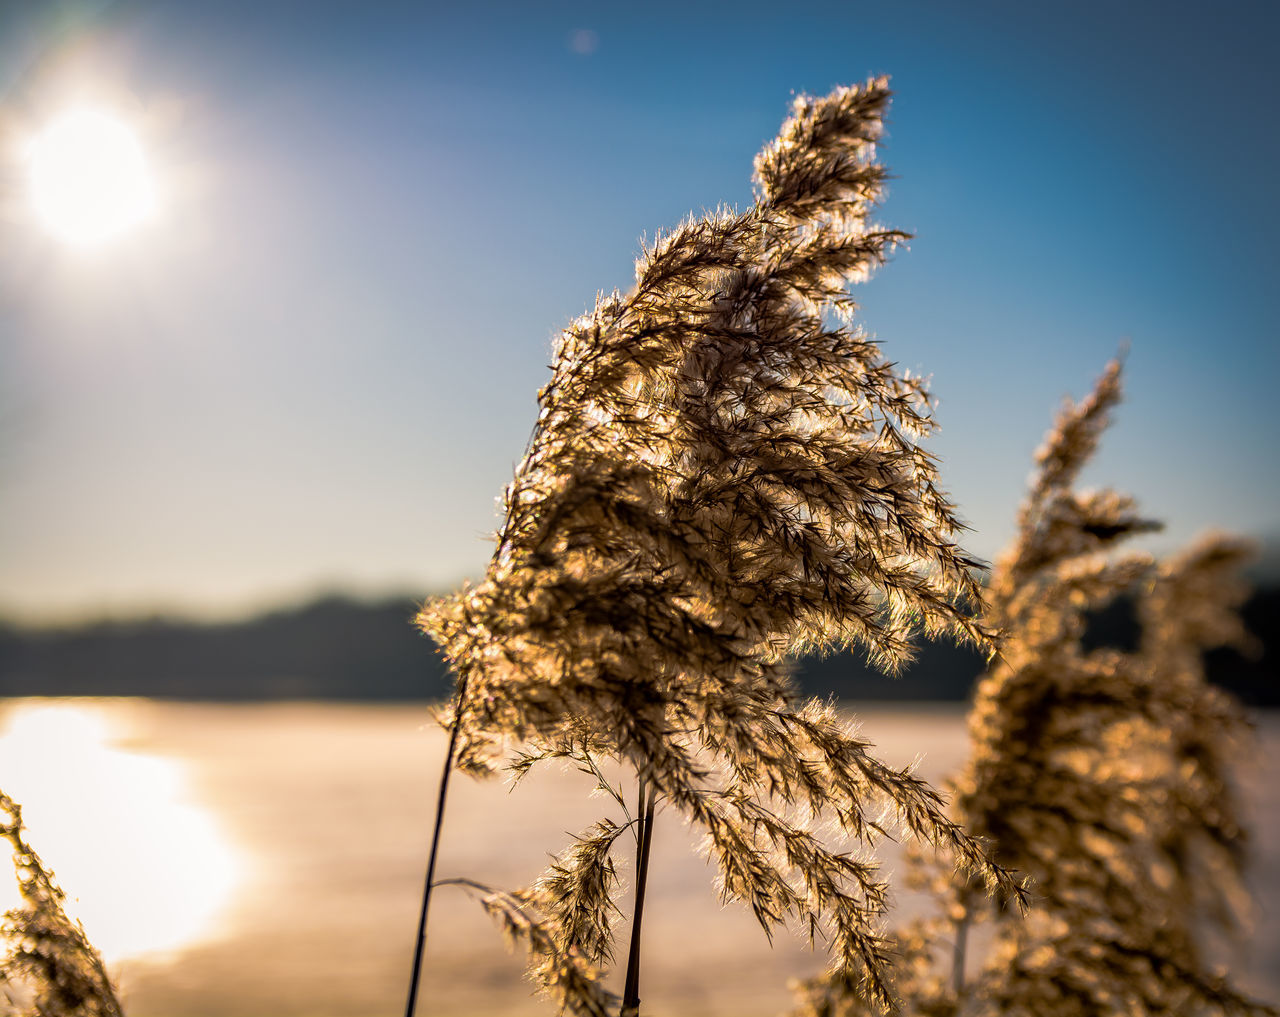 Sky Nature Sunlight Water No People Clear Sky Sunset Vacations Outdoors Lake Landscape Tree Grass Close-up Day Sun View Natural Beauty Nature_collection Landscape_collection EyeEmNatureLover Sunlight Nature Photography Flower Head Growth Freshness Flower